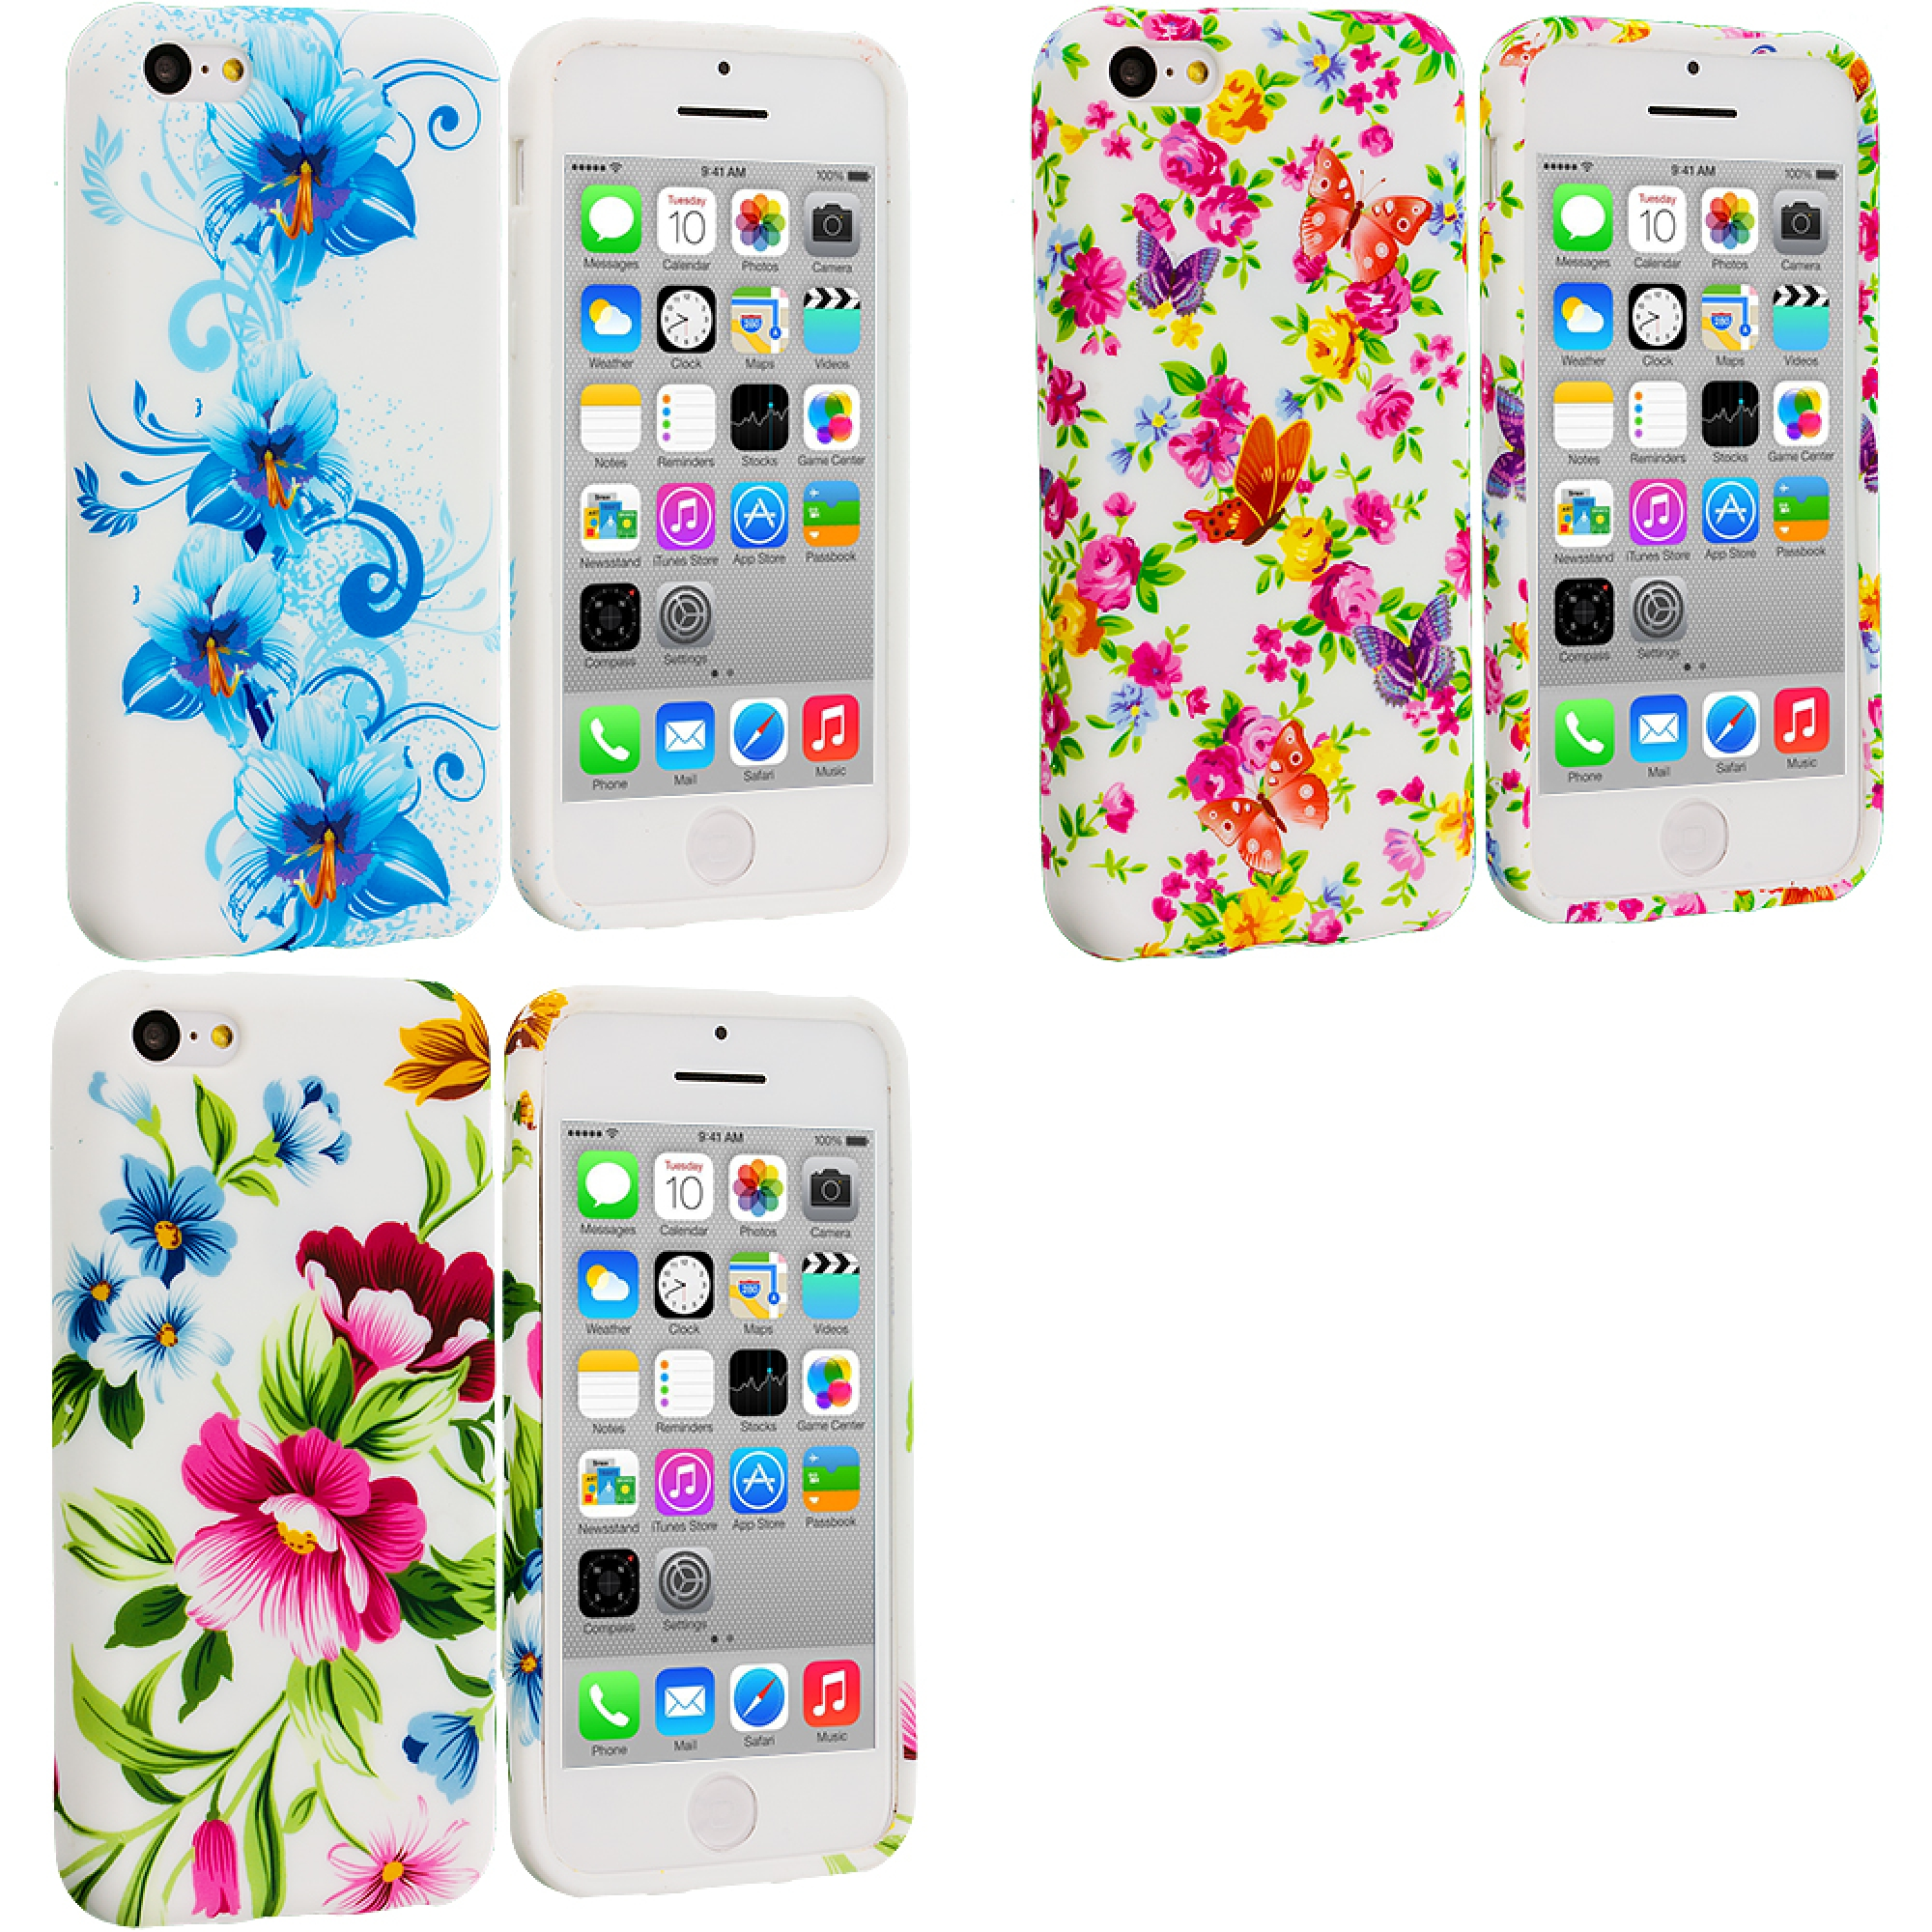 Apple iPhone 5C 3 in 1 Combo Bundle Pack - Flower TPU Design Soft Case Cover